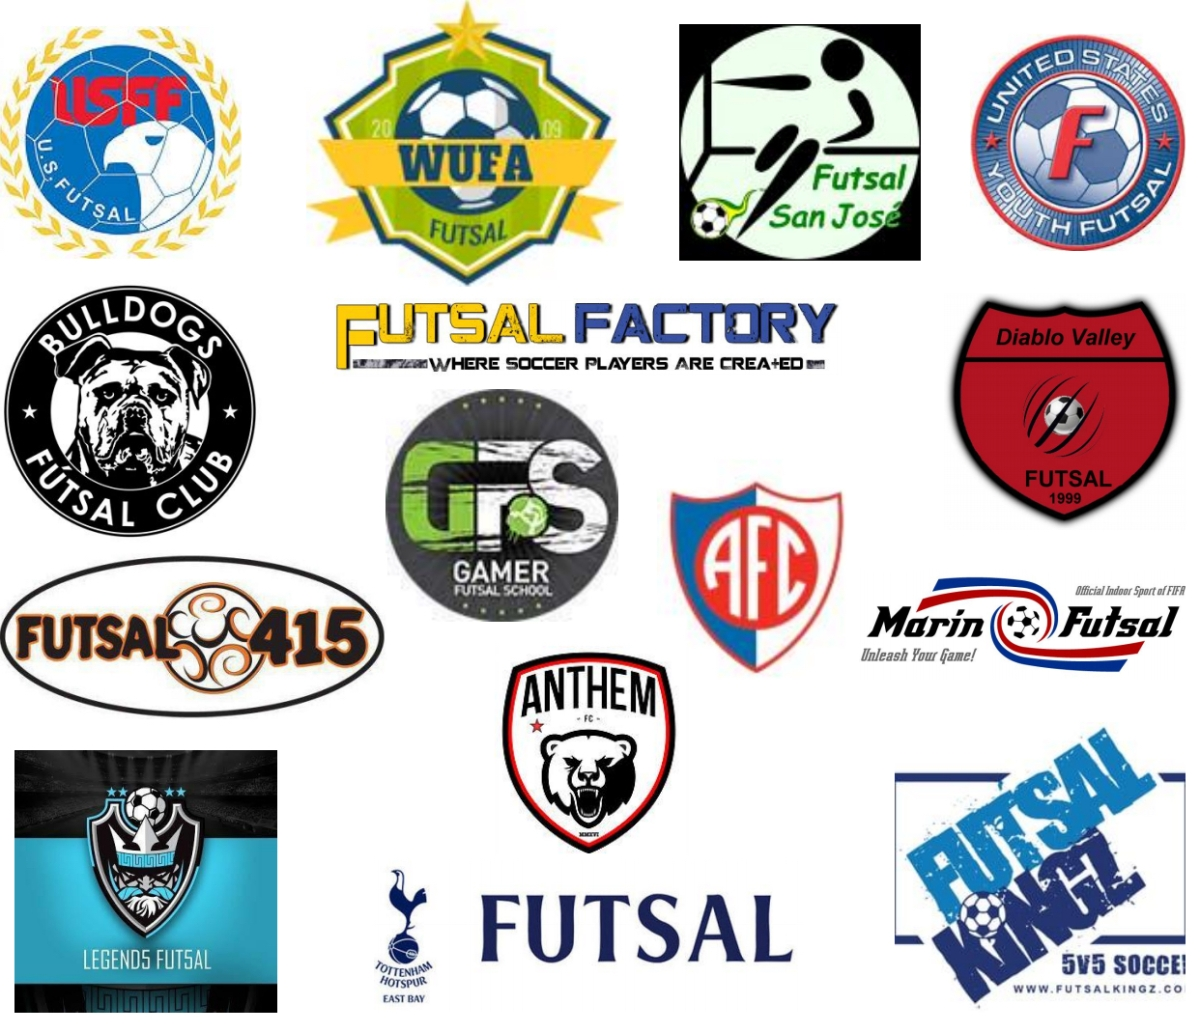 Where to play futsal in NorCal